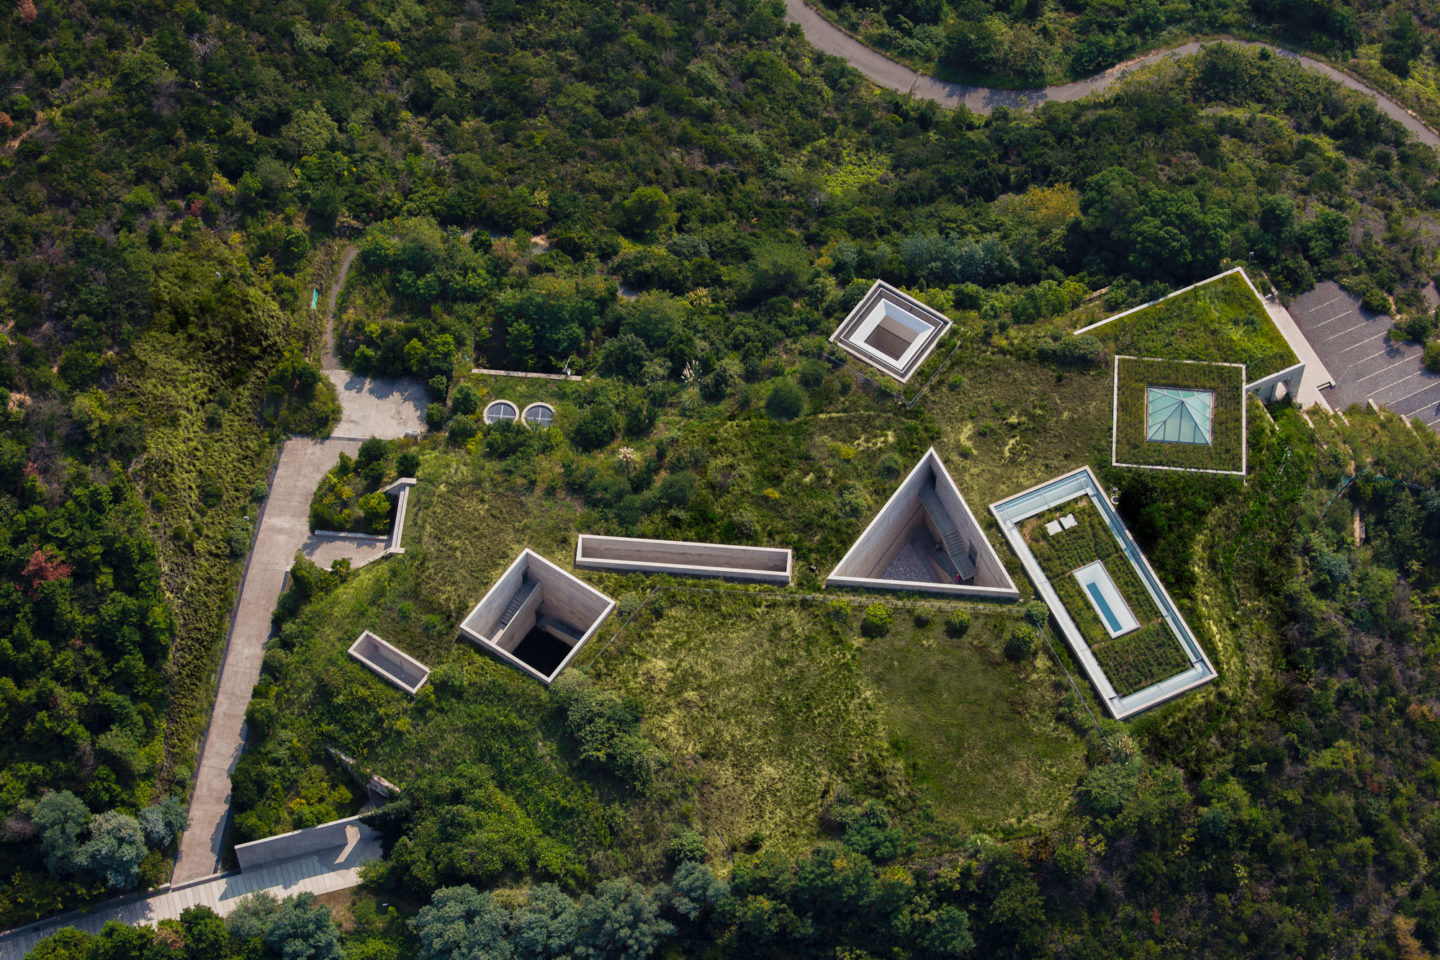 Chichu Art Museum by Tadao Ando Art museum in the Earth (Snehal Vyawahare) Sheet1